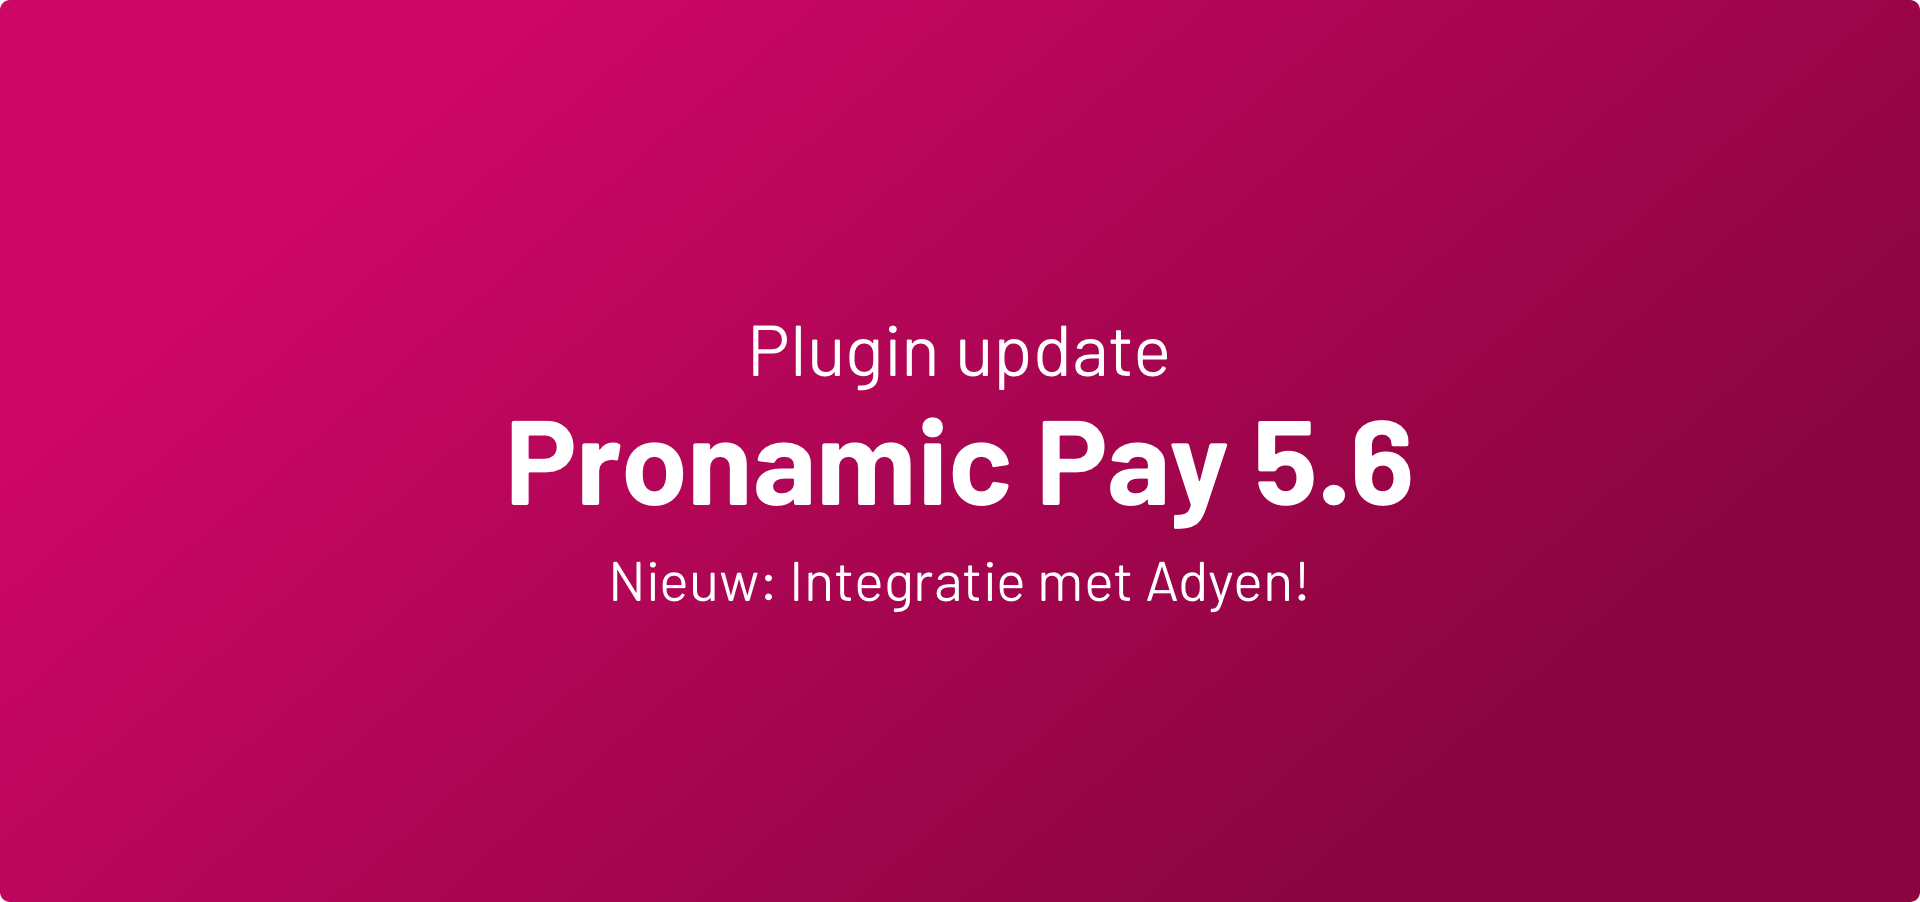 Pronamic Pay 5.6 with Adyen support